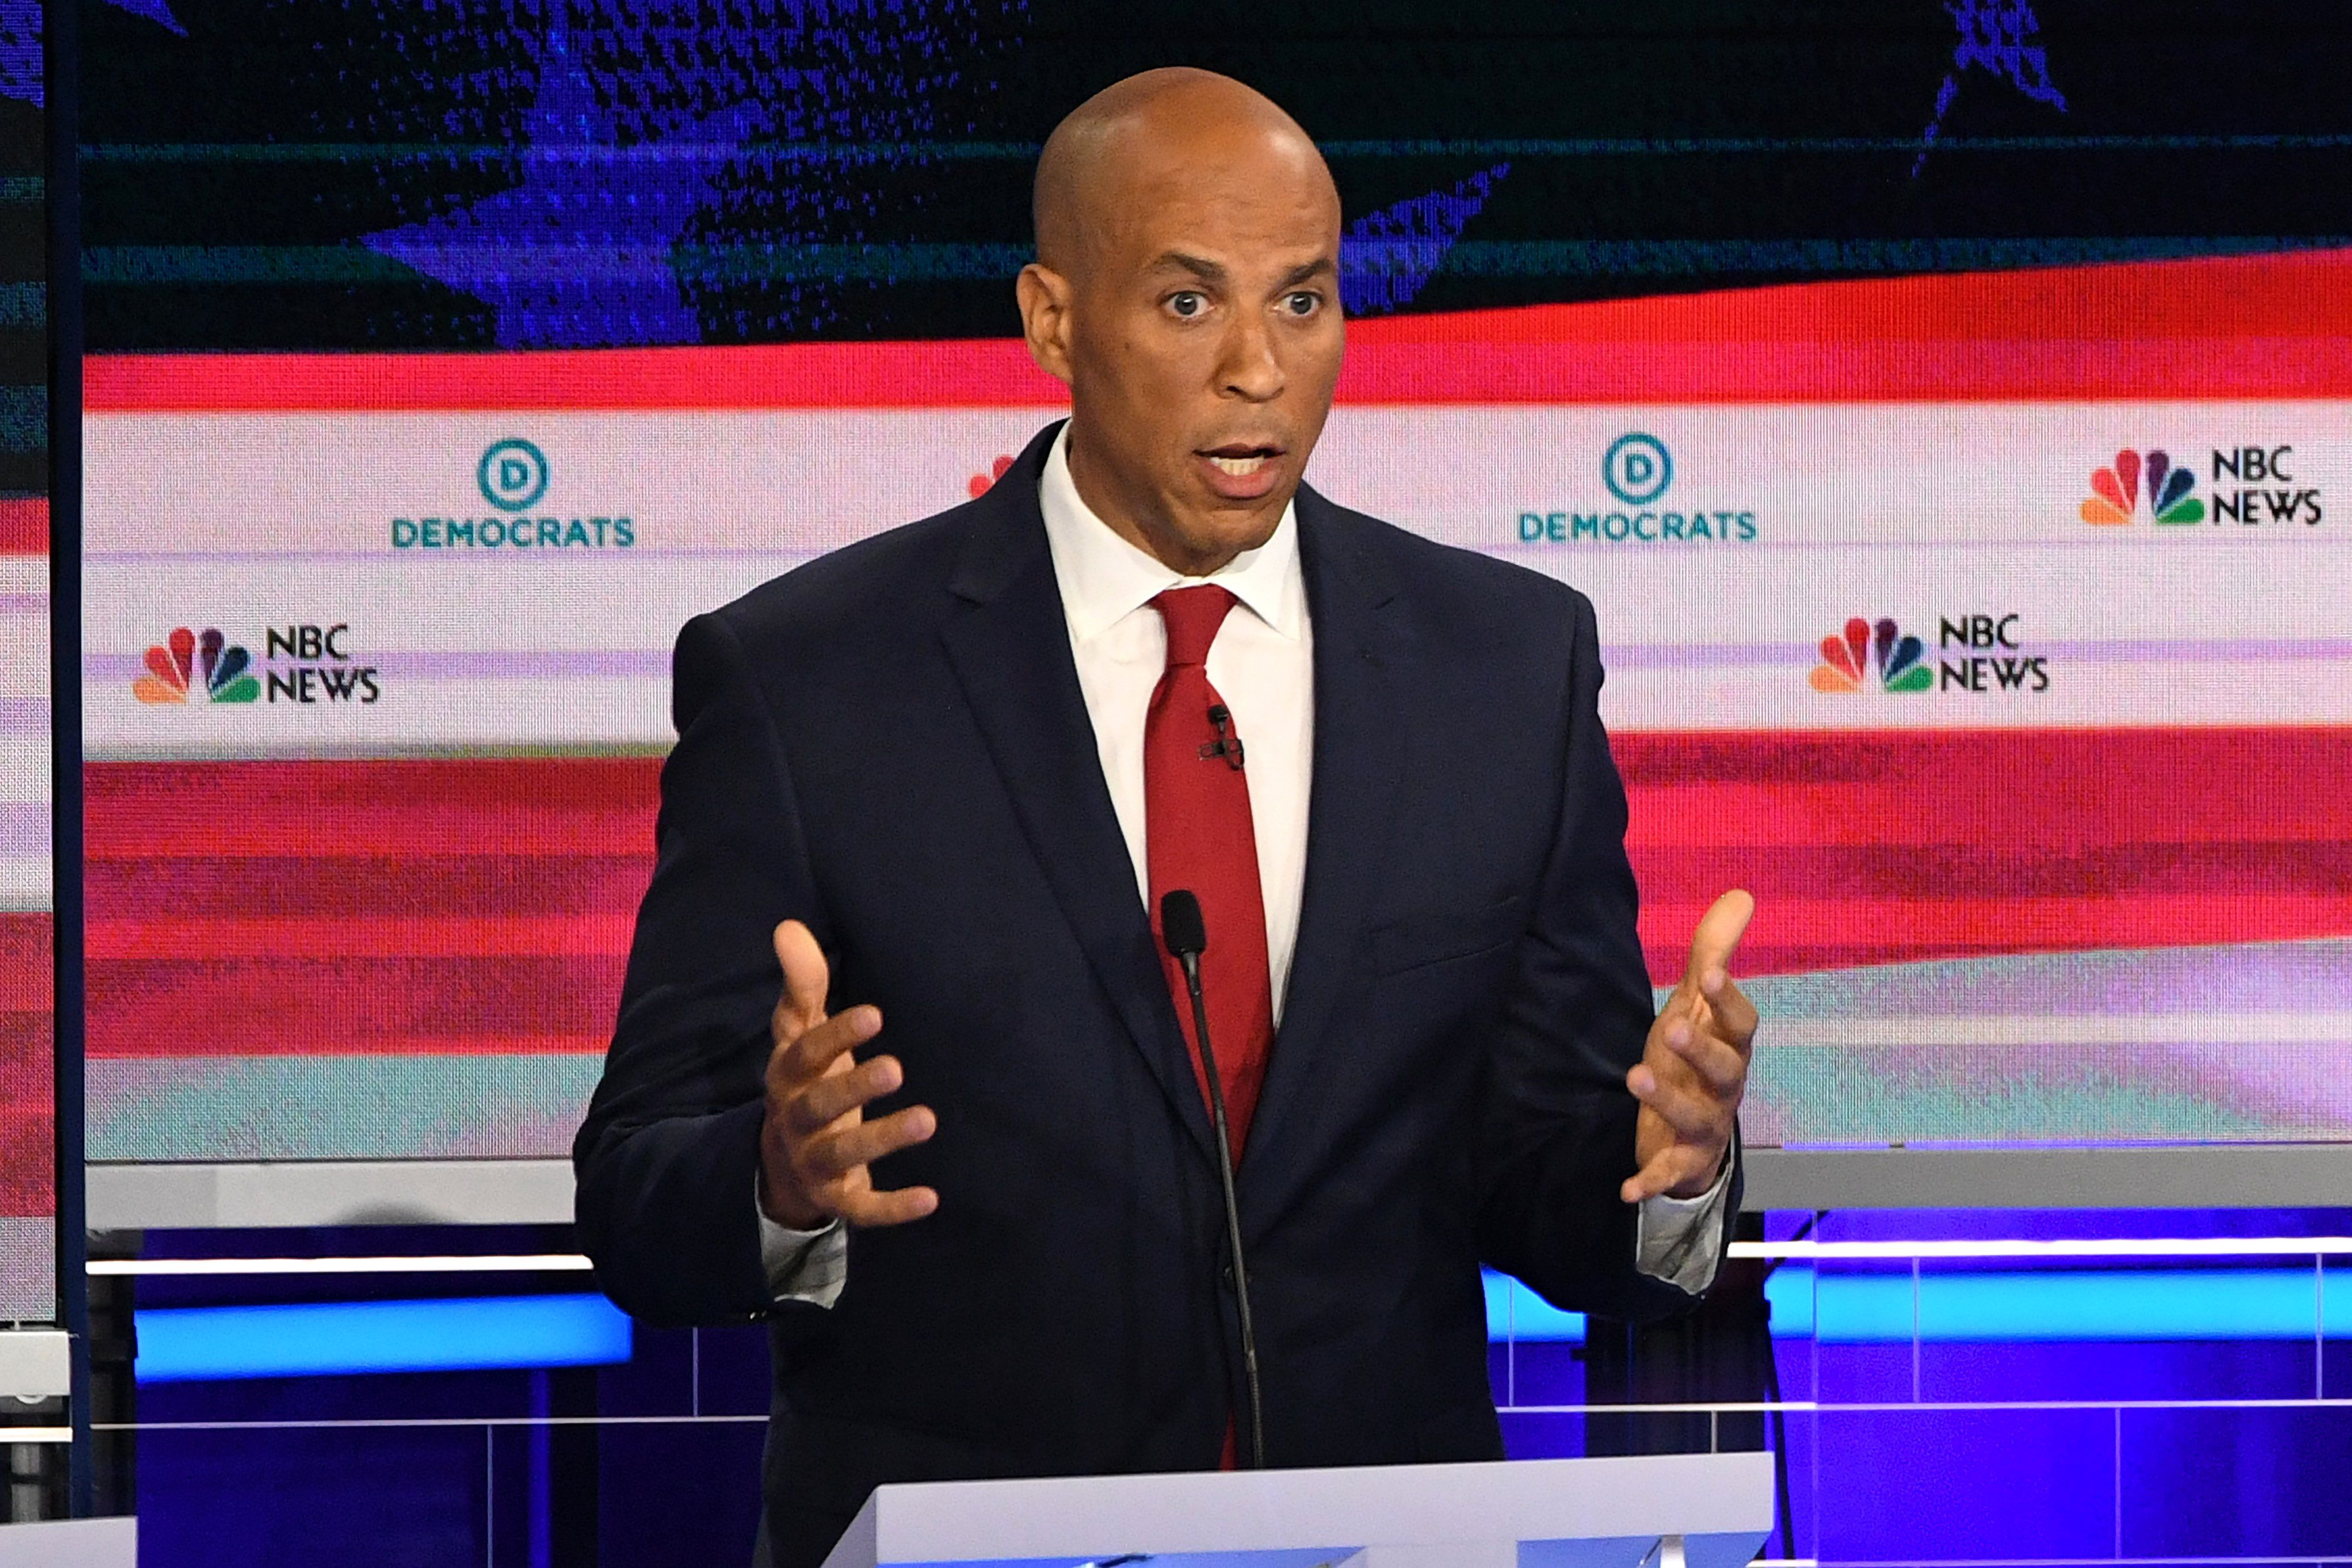 Democratic presidential hopeful U.S. Senator from New Jersey Cory Booker participates in the first Democratic primary debate of the 2020 presidential campaign at the Adrienne Arsht Center for the Performing Arts in Miami, June 26, 2019.